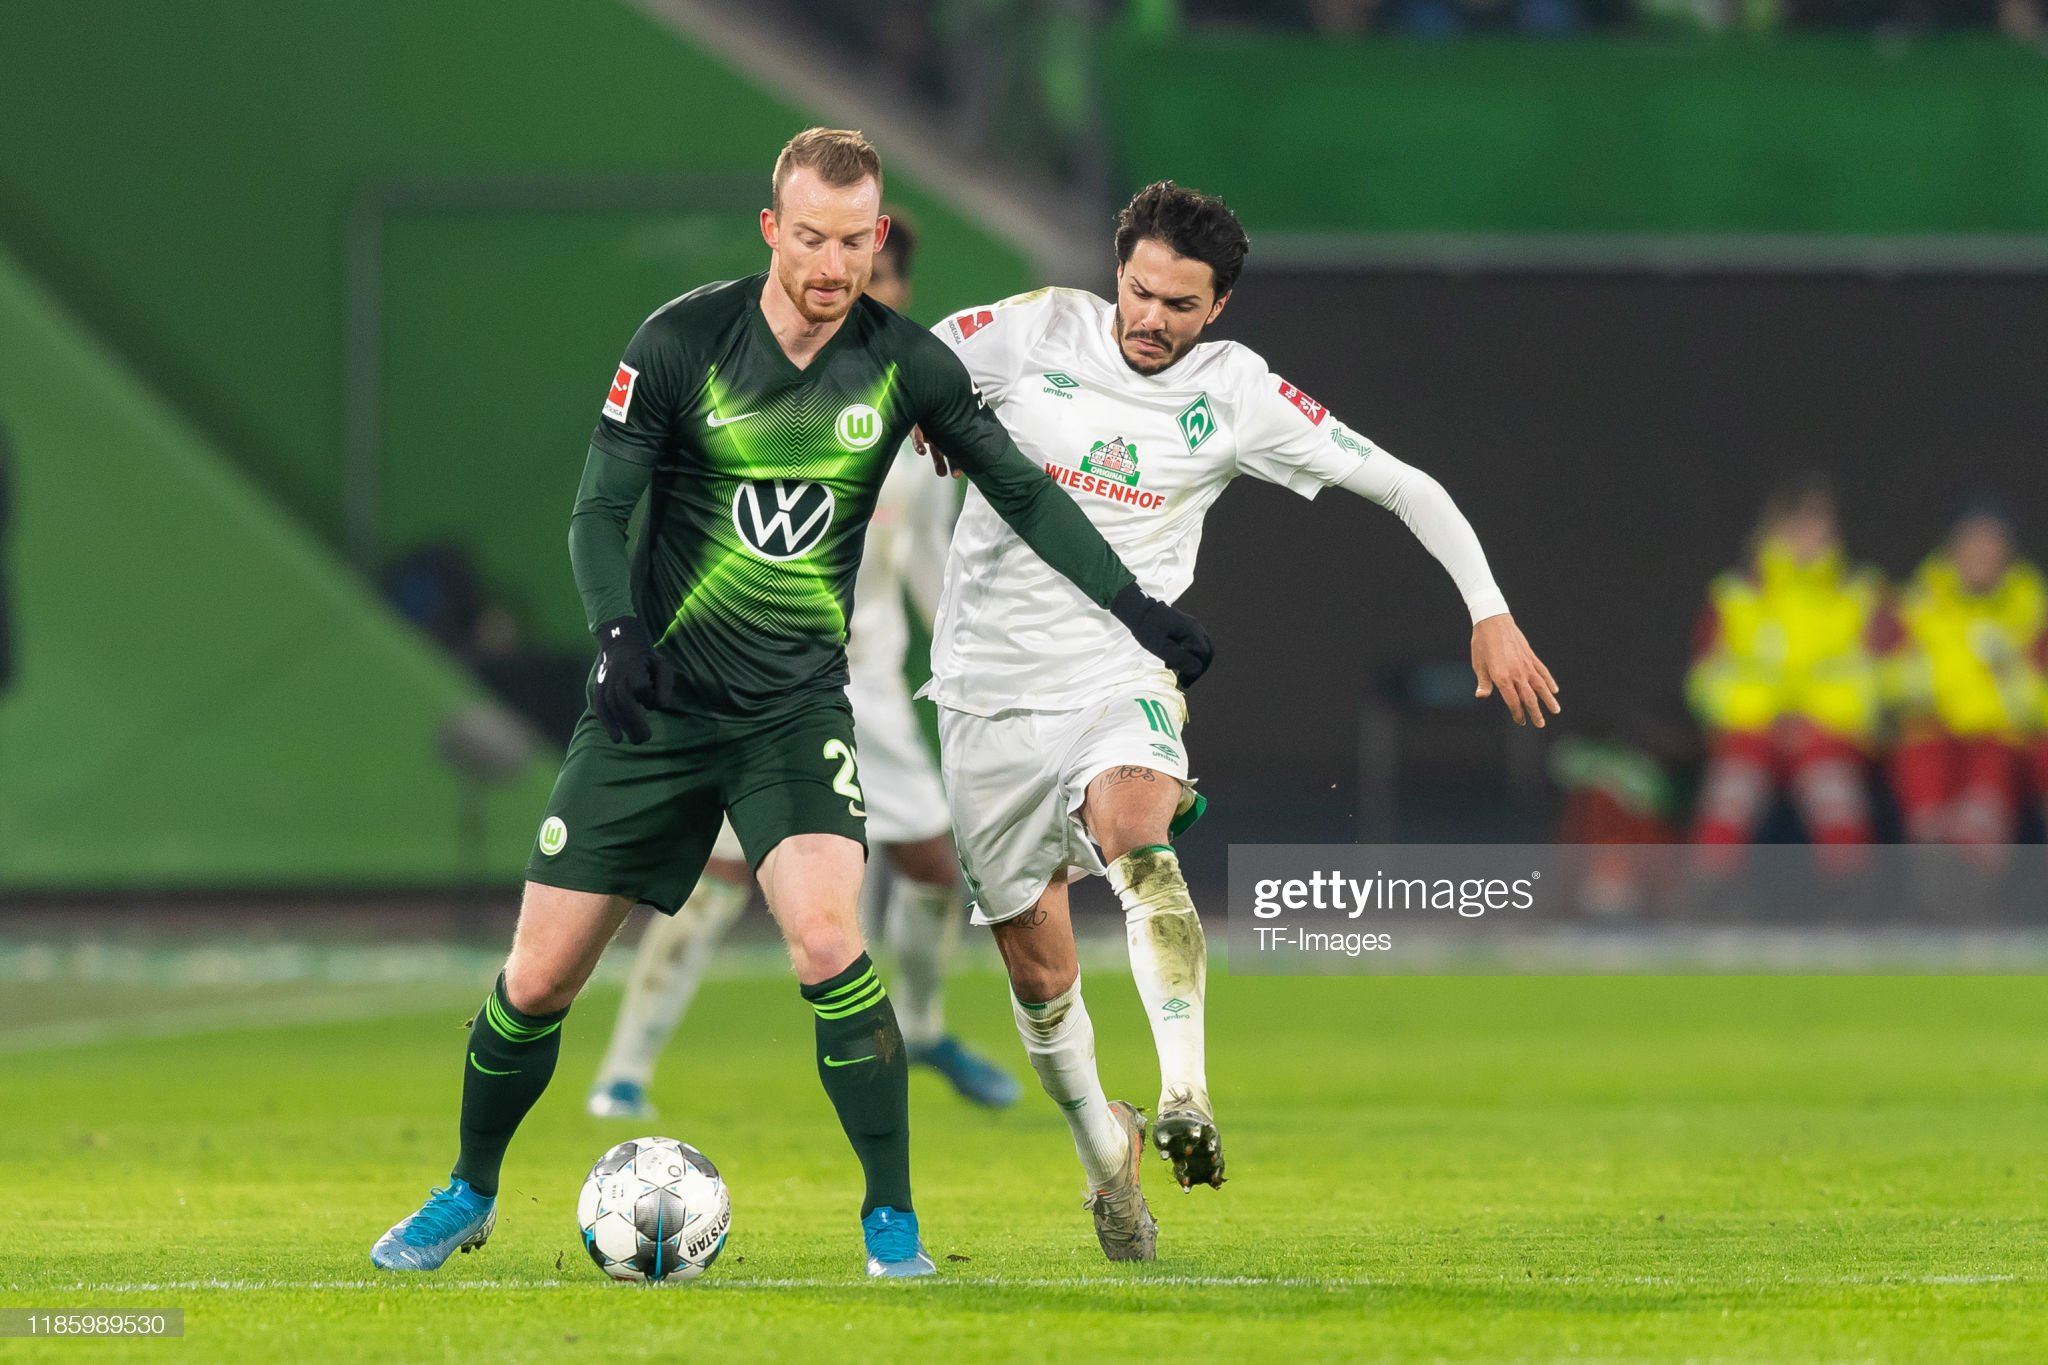 Werder Bremen vs Wolfsburg Preview, prediction and odds